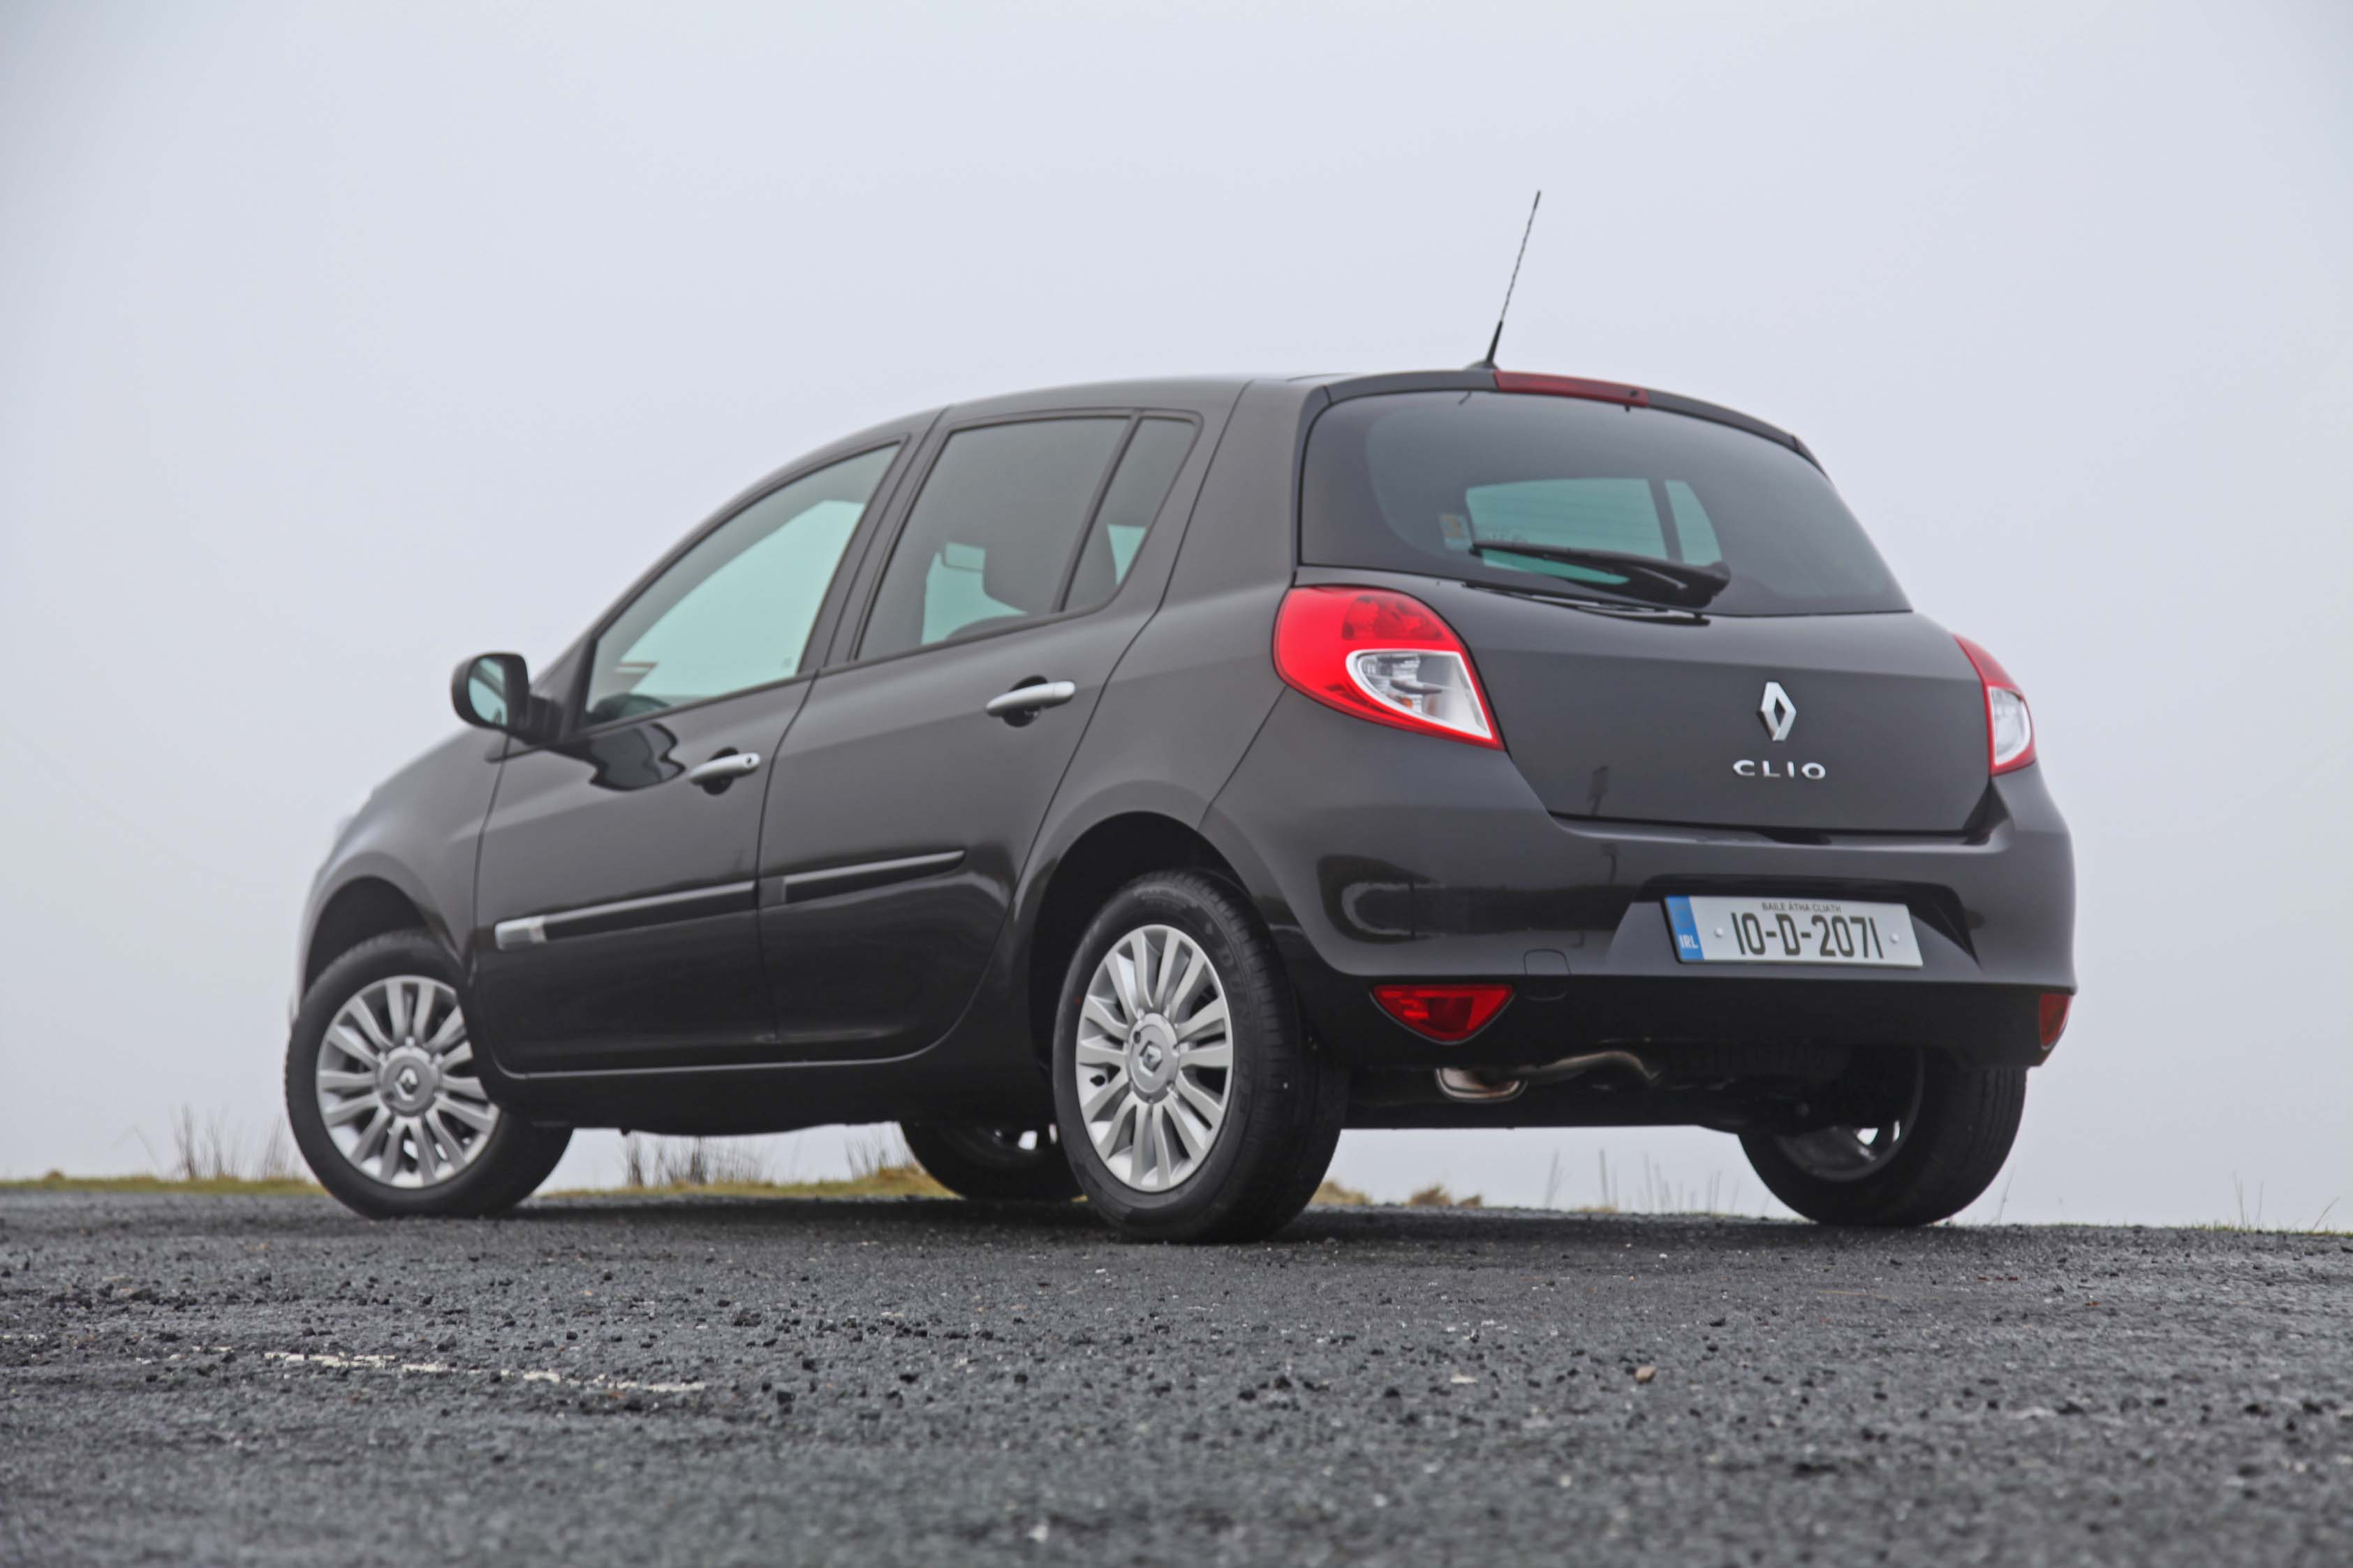 renault clio petrol 2010 smokerspack car reviews. Black Bedroom Furniture Sets. Home Design Ideas